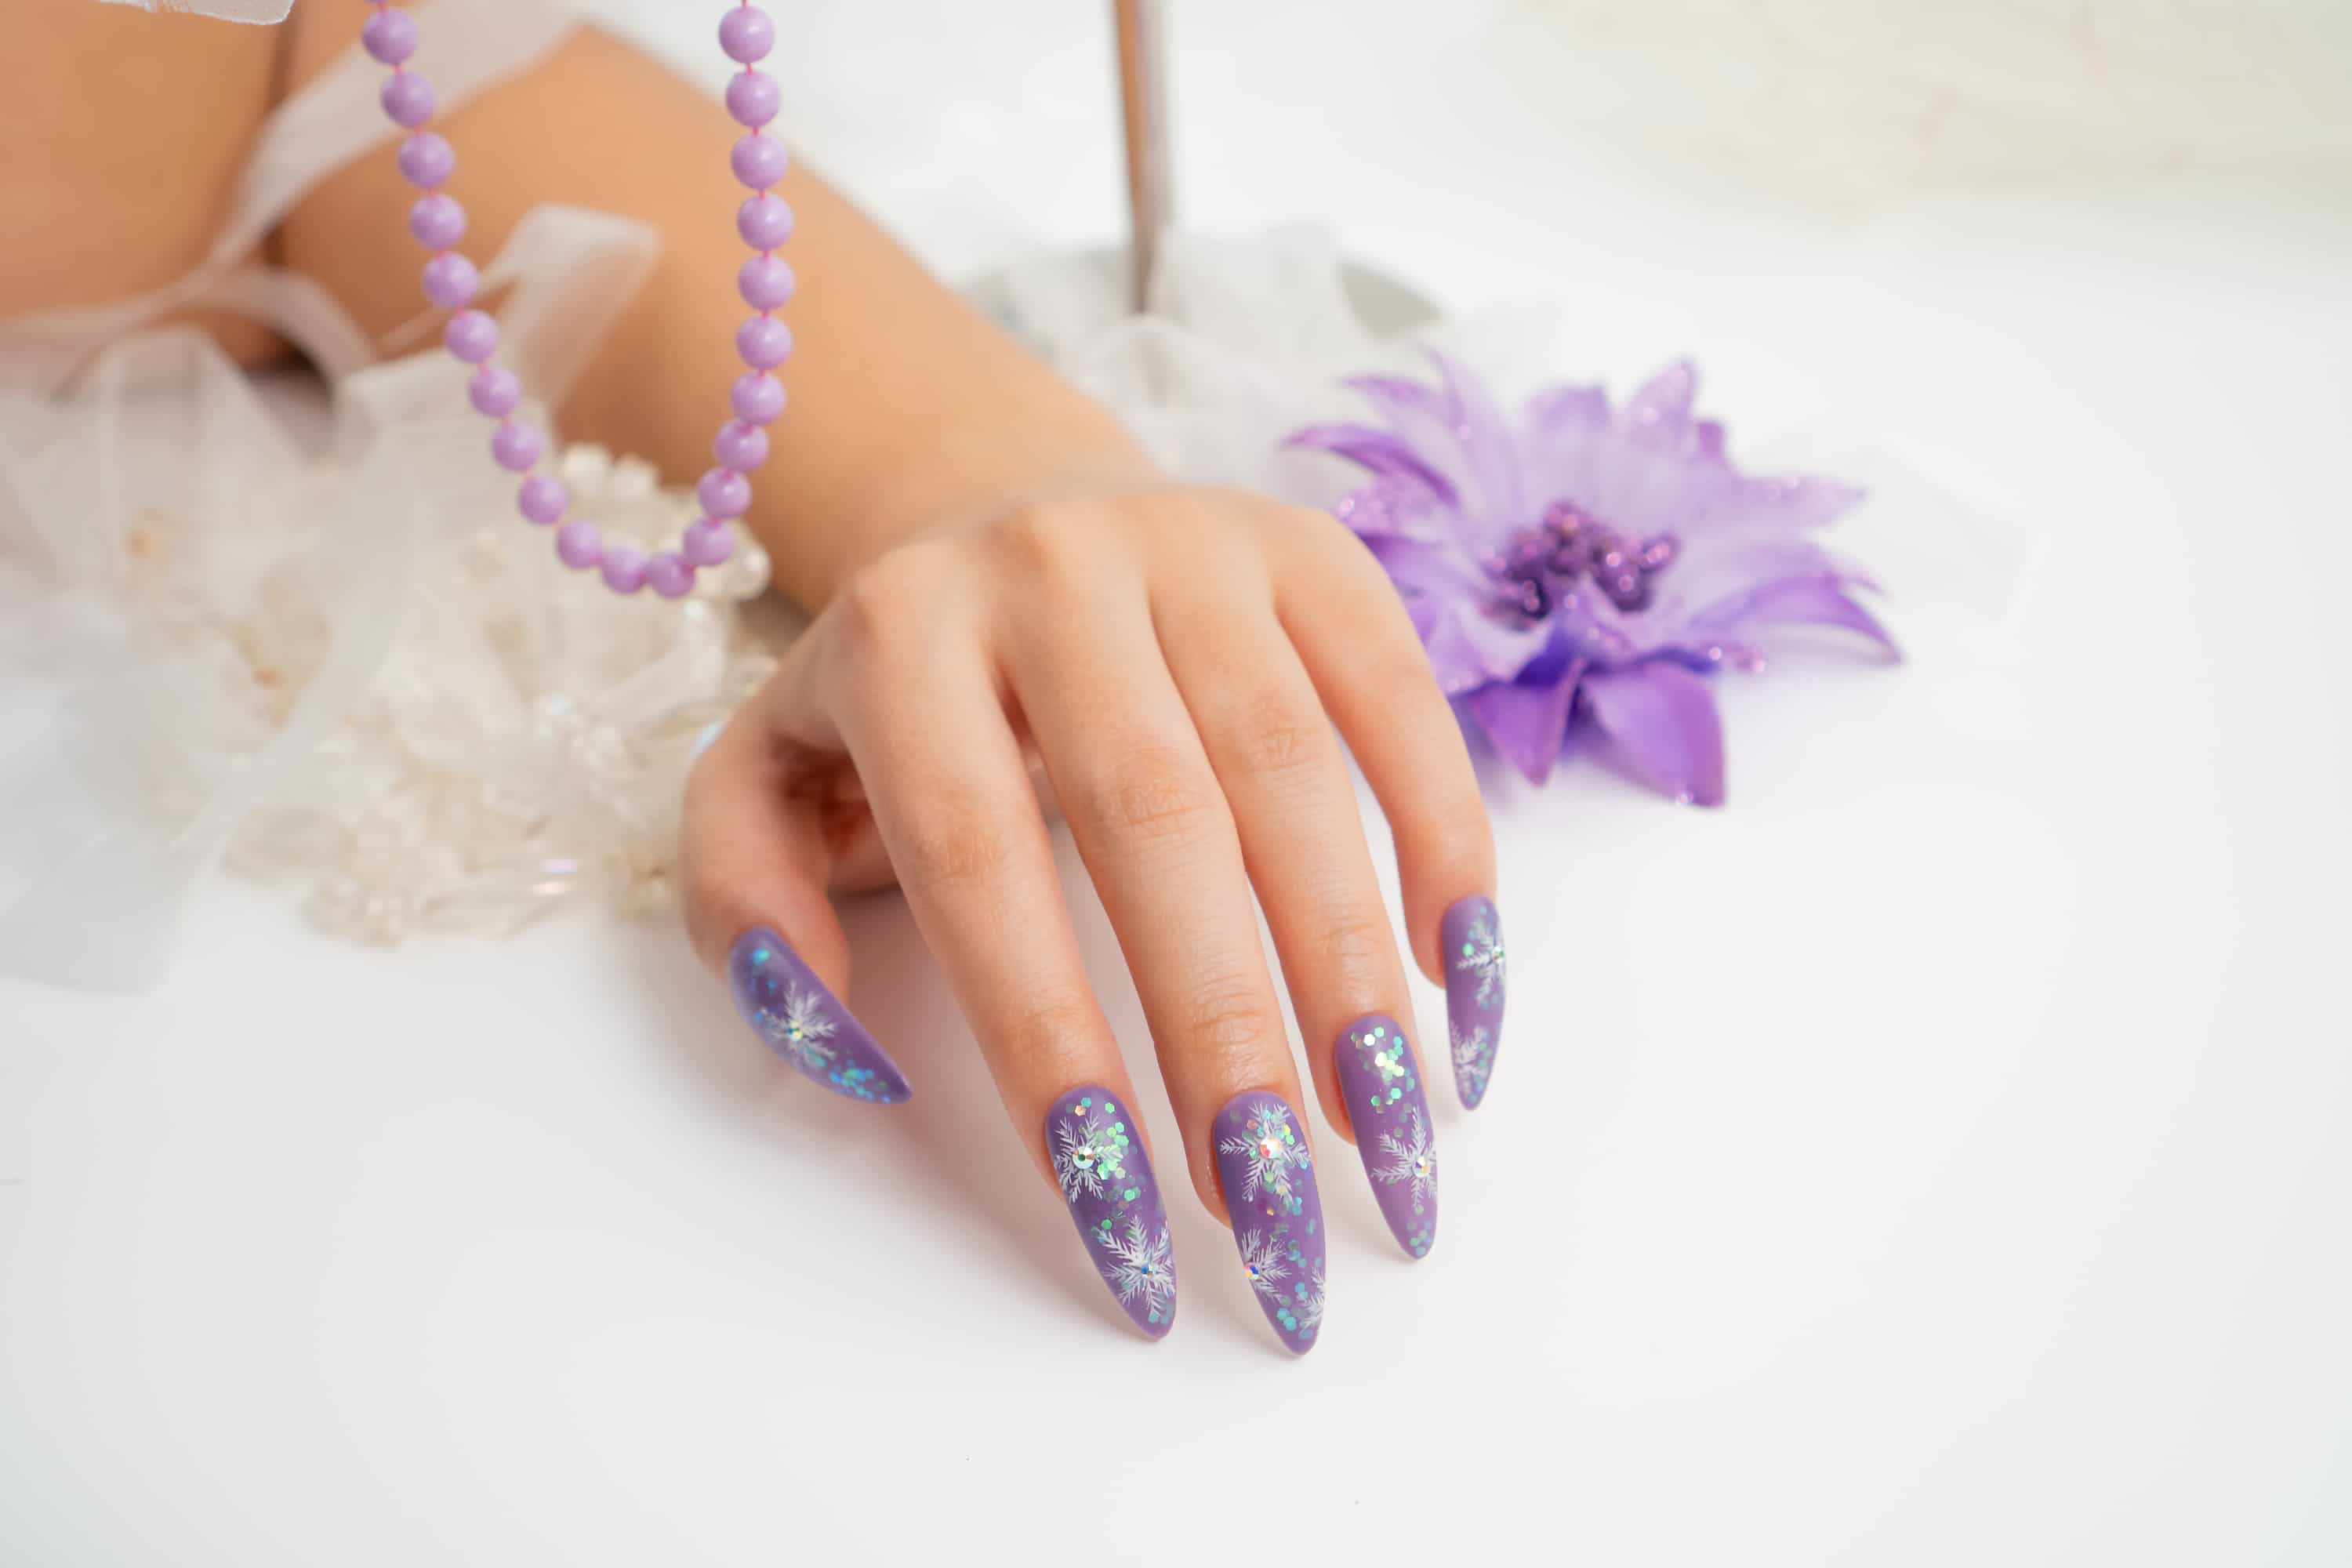 Hand with purple nails and sparkly star designs